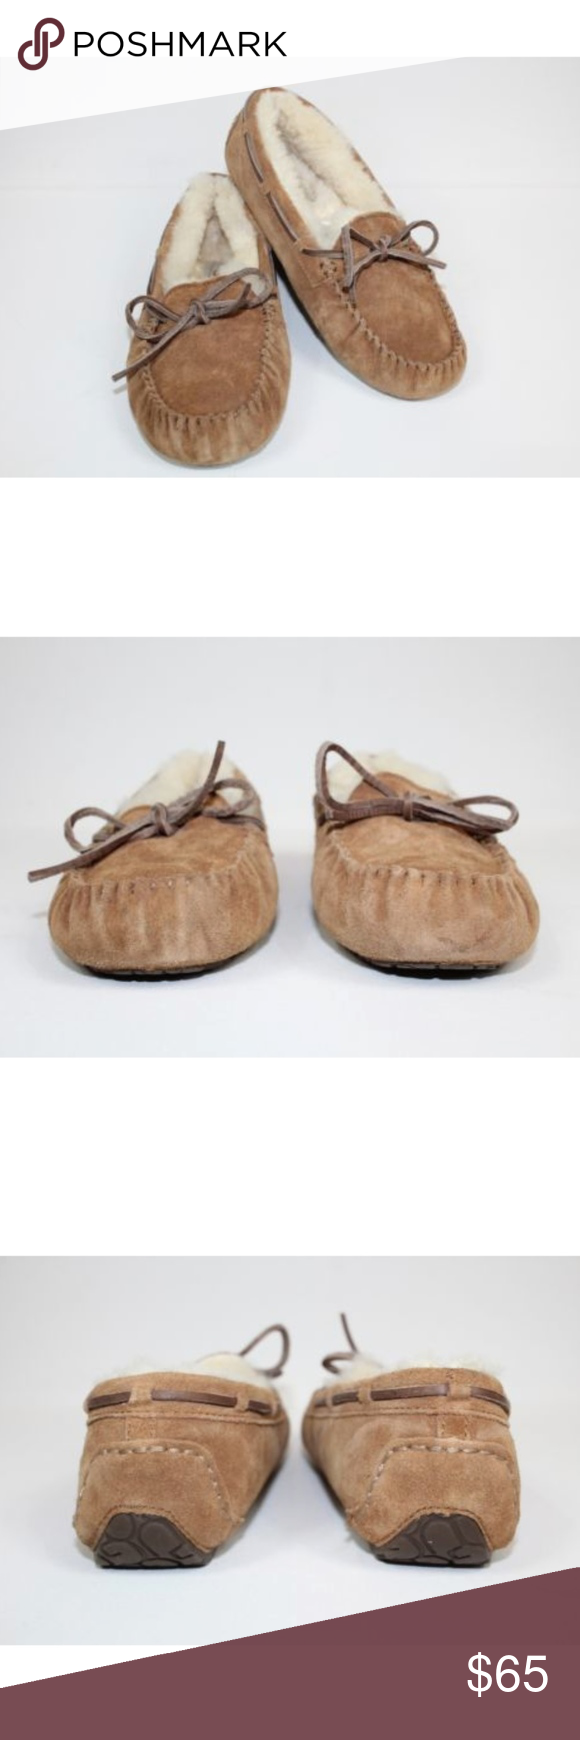 79890651ada Ugg Dakota Slippers Chestnut Brown Suede Moccasins UGG Kids Dakota Chestnut  Brown Suede Slippers w